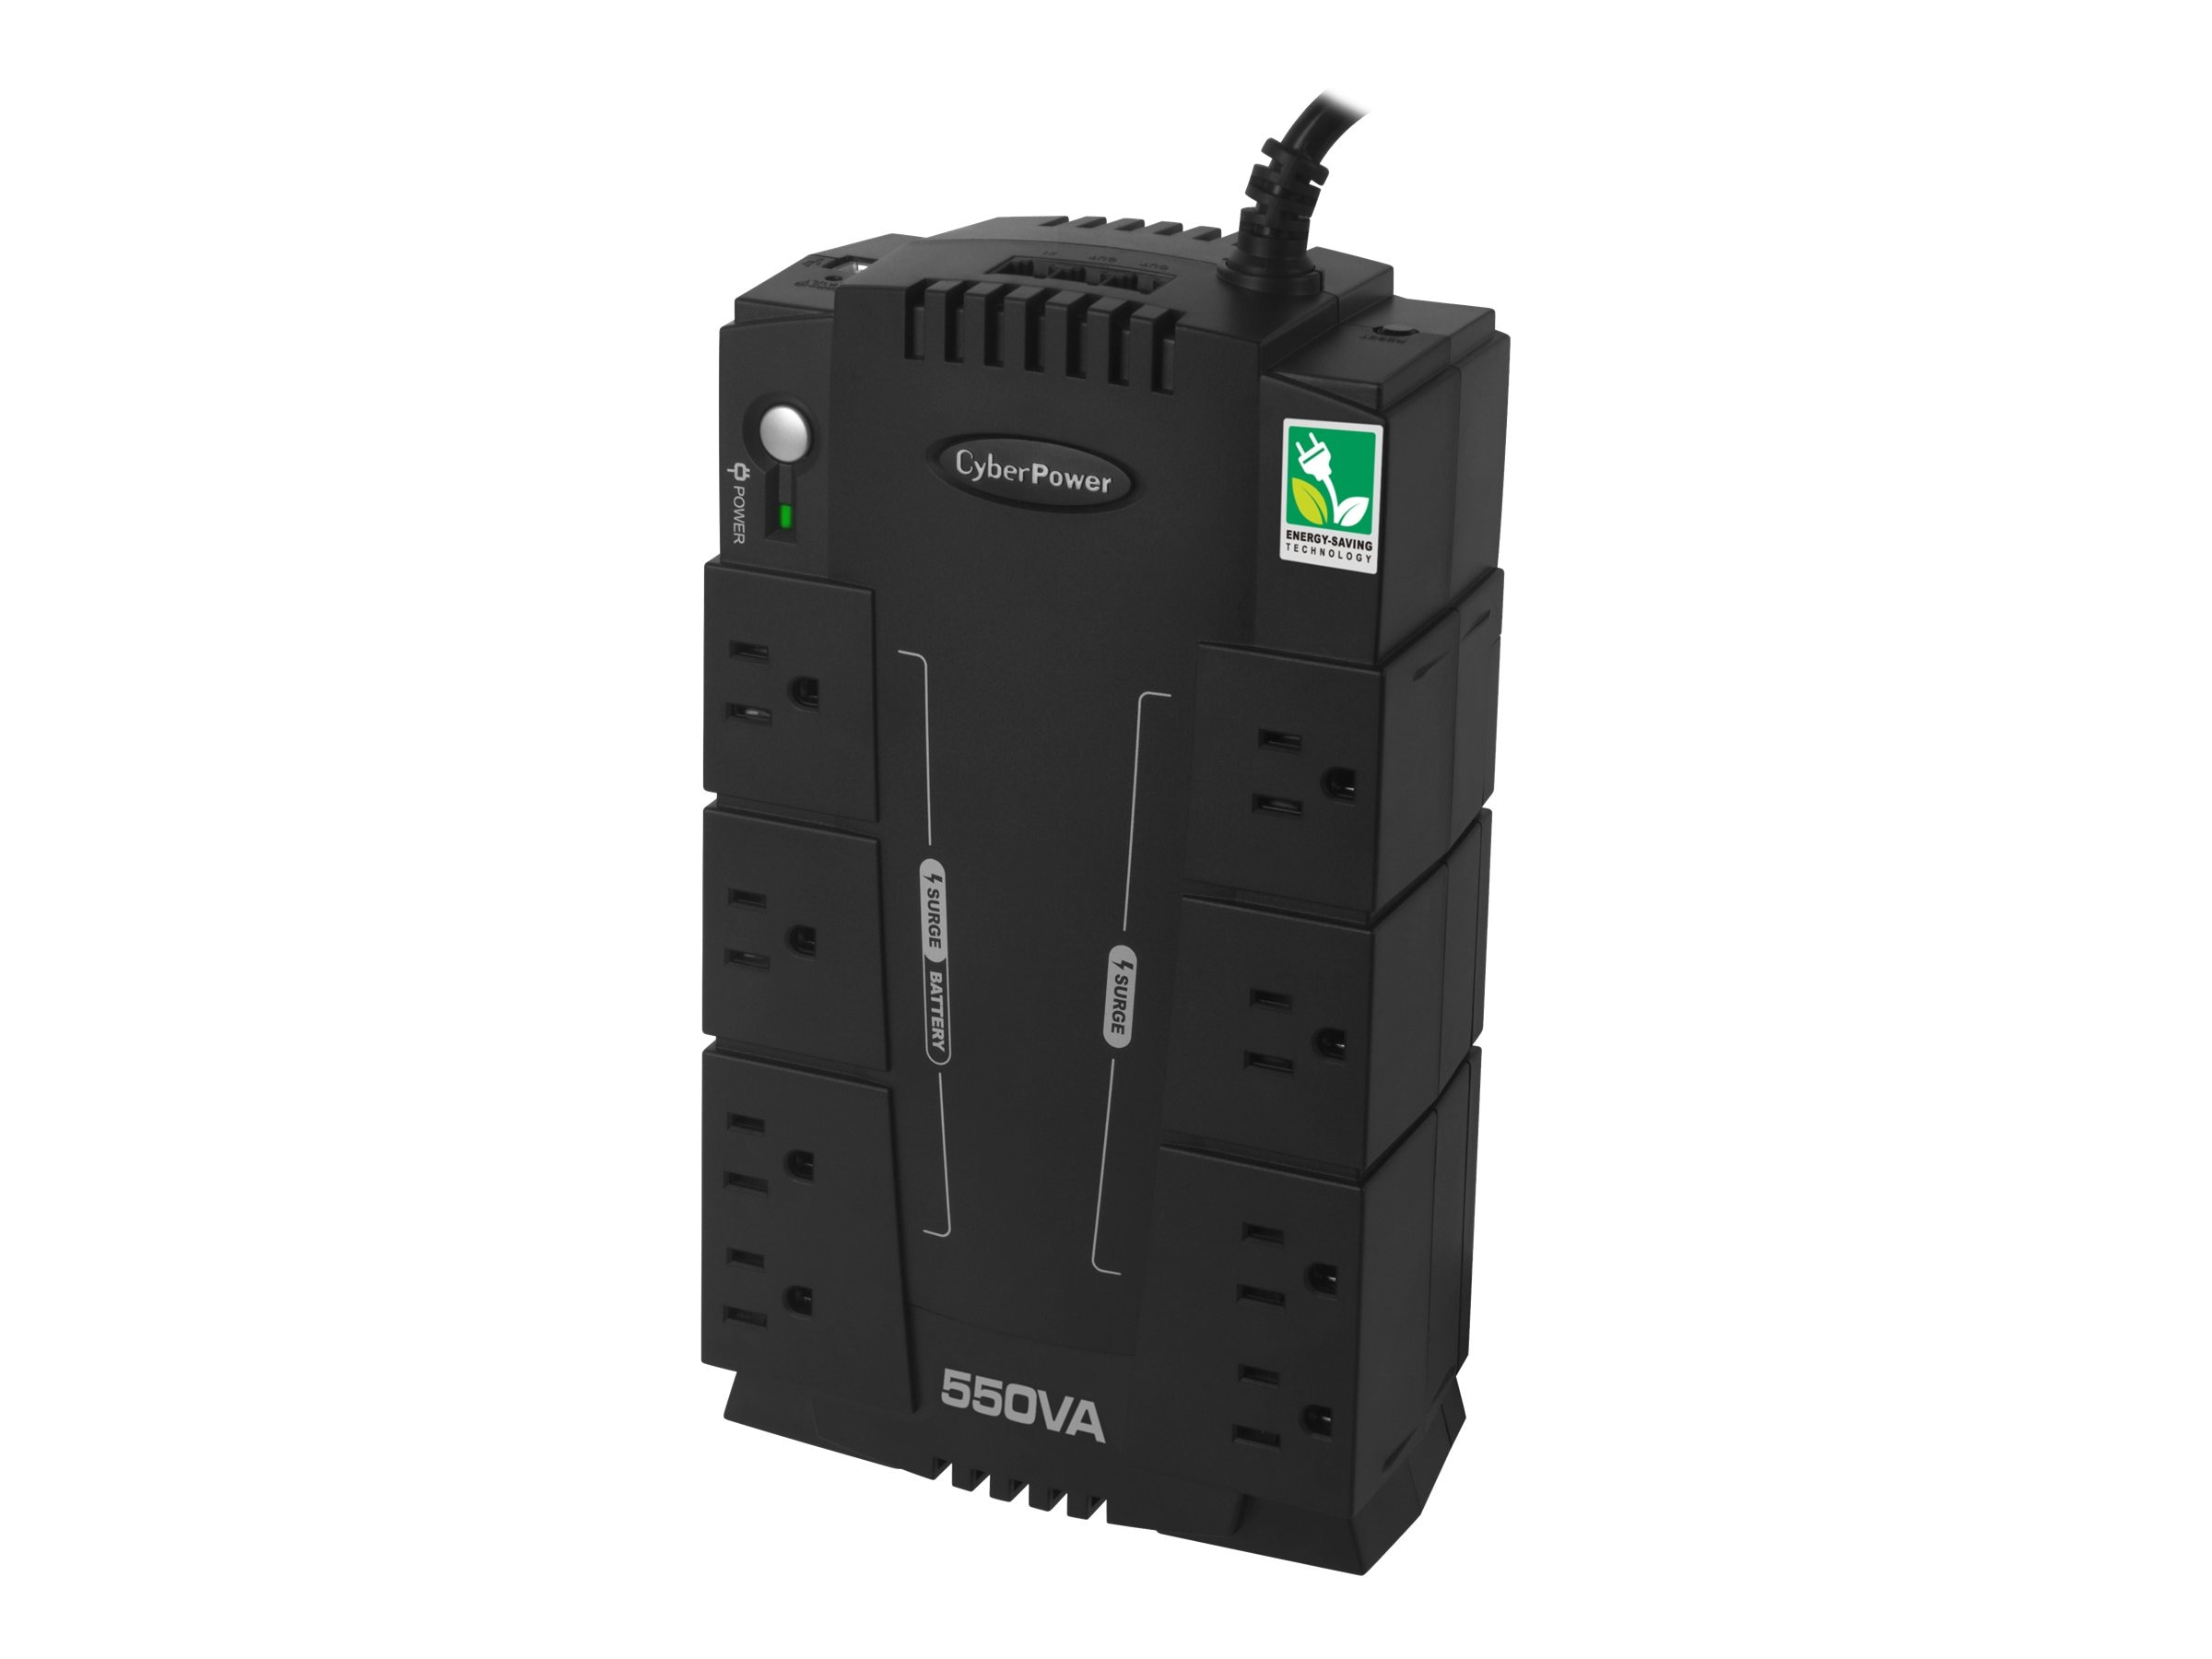 CyberPower 550VA 120V Standby Green UPS (8) 5-15R Outlets USB, RJ-11, Management Software TAA Compliant